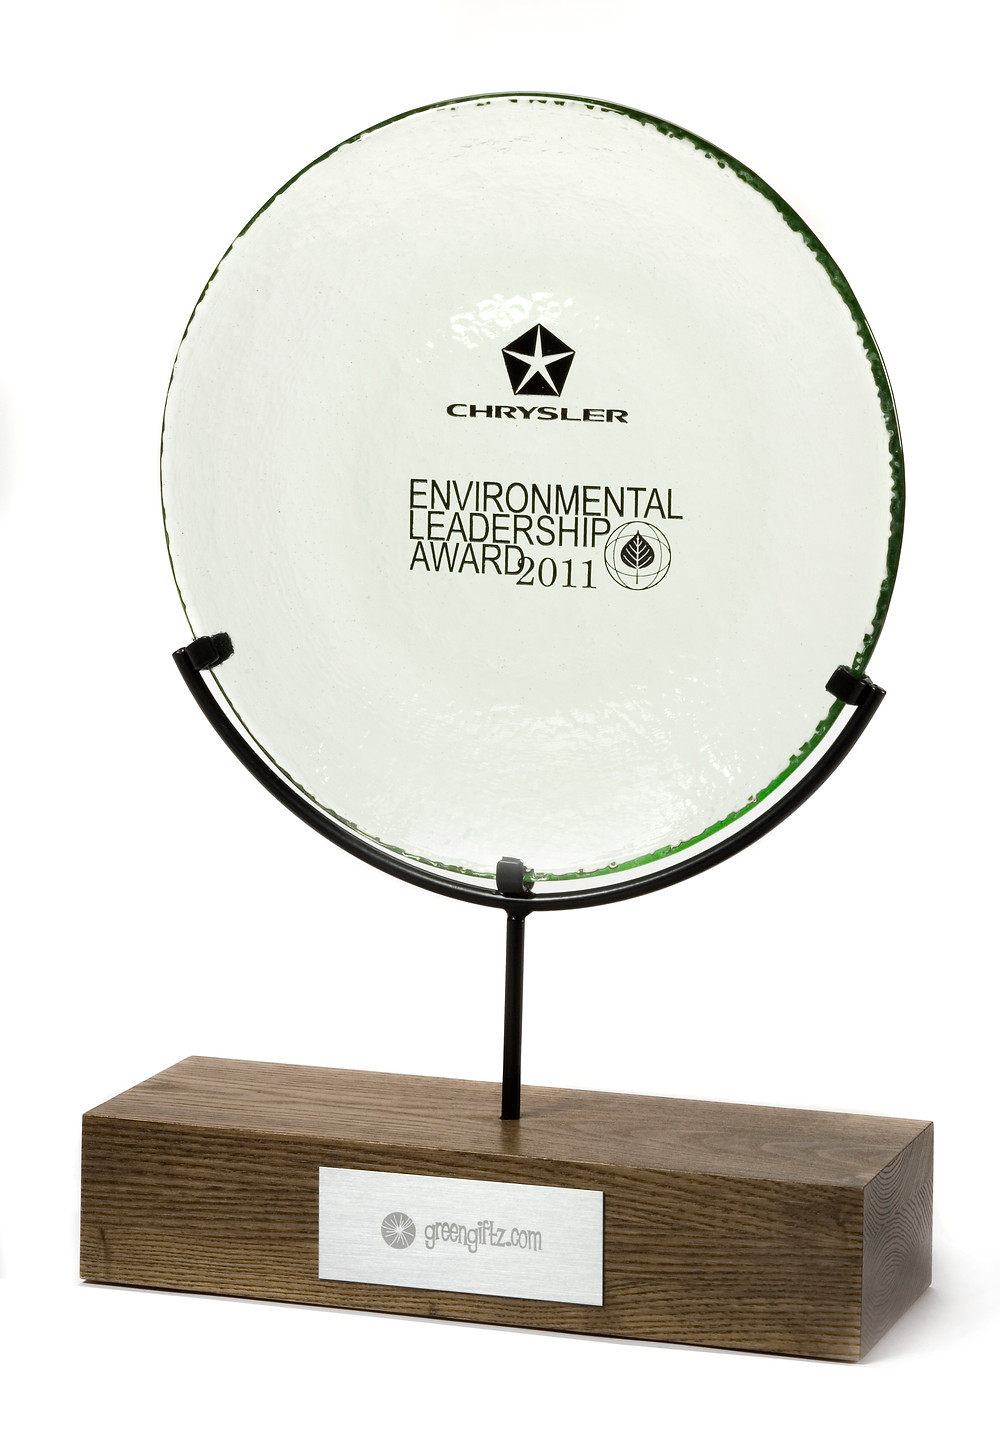 eco-friendly award made of recycled wood